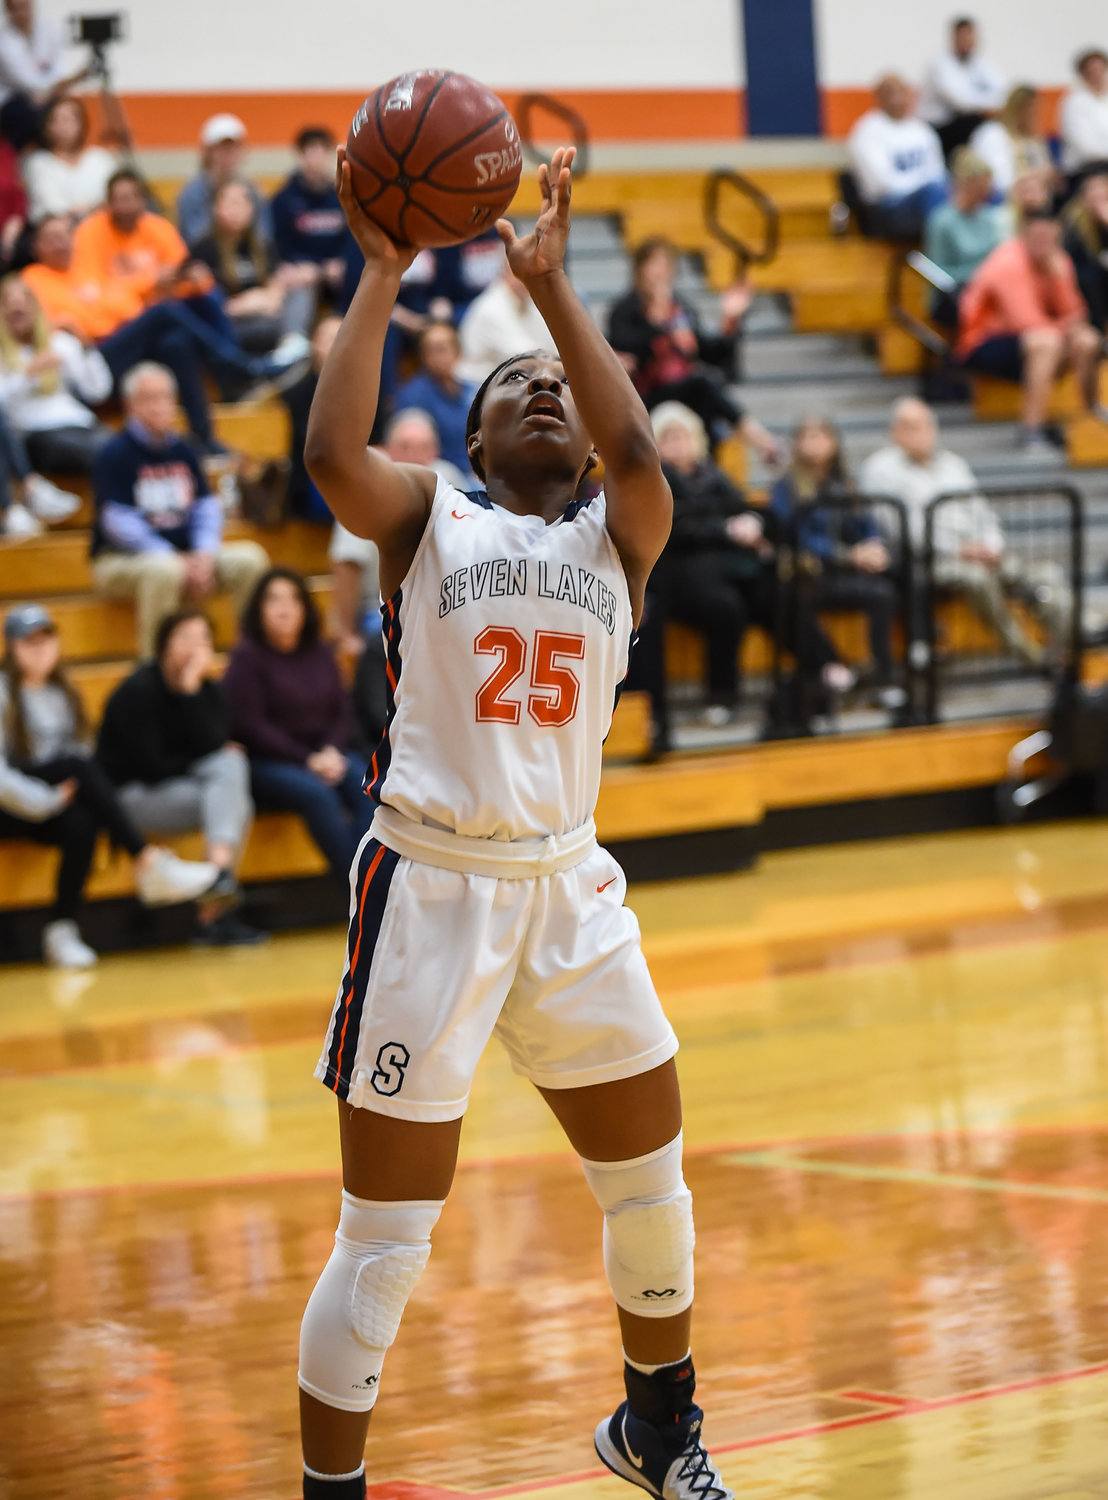 Katy Tx. Jan. 7, 2020: Seven Lakes Ib Afolabi (25) gets under the basket as she goes up for the shot during district basketball game between Katy Tigers and Seven Lakes Spartans at Seven Lakes HS.  (Photo by Mark Goodman / Katy Times)